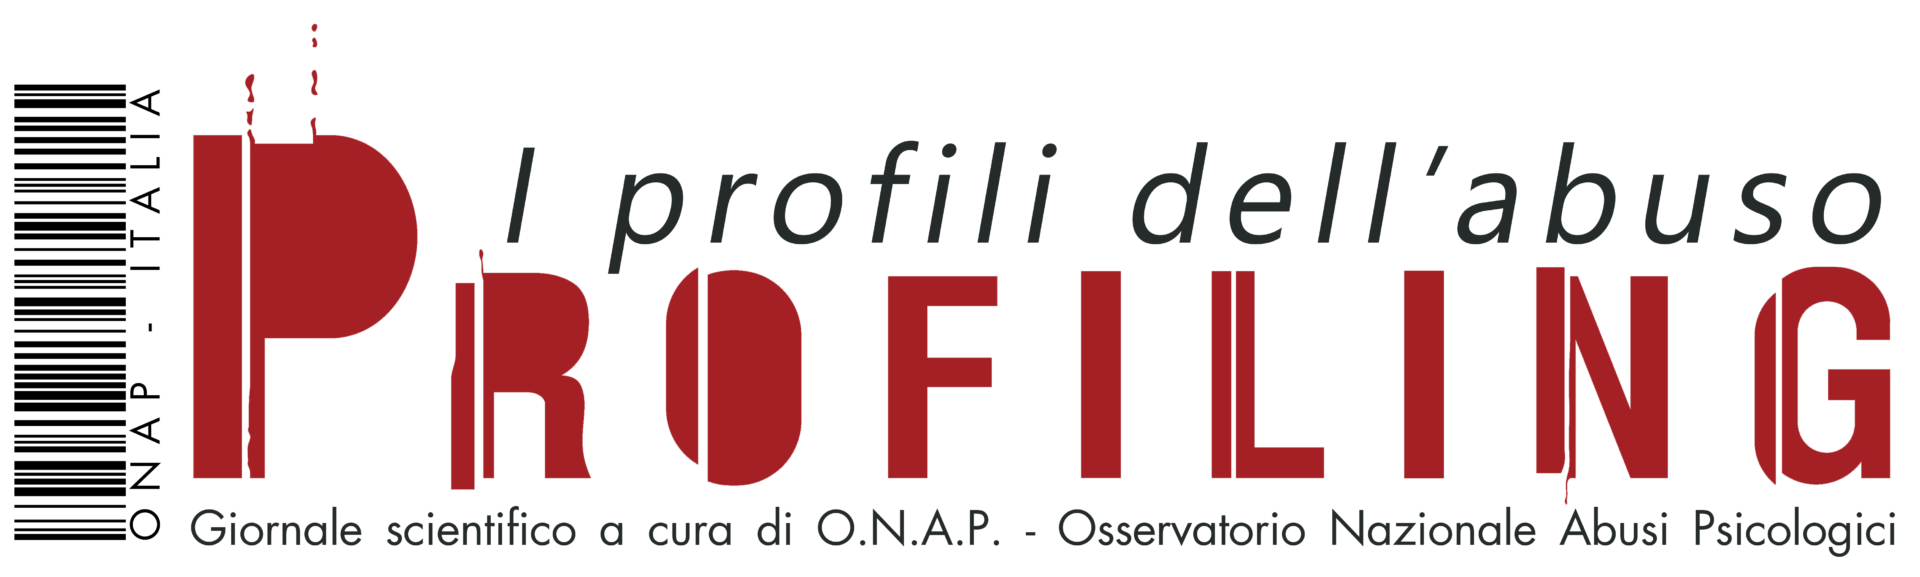 Giornale scientifico a cura dell'O.N.A.P.